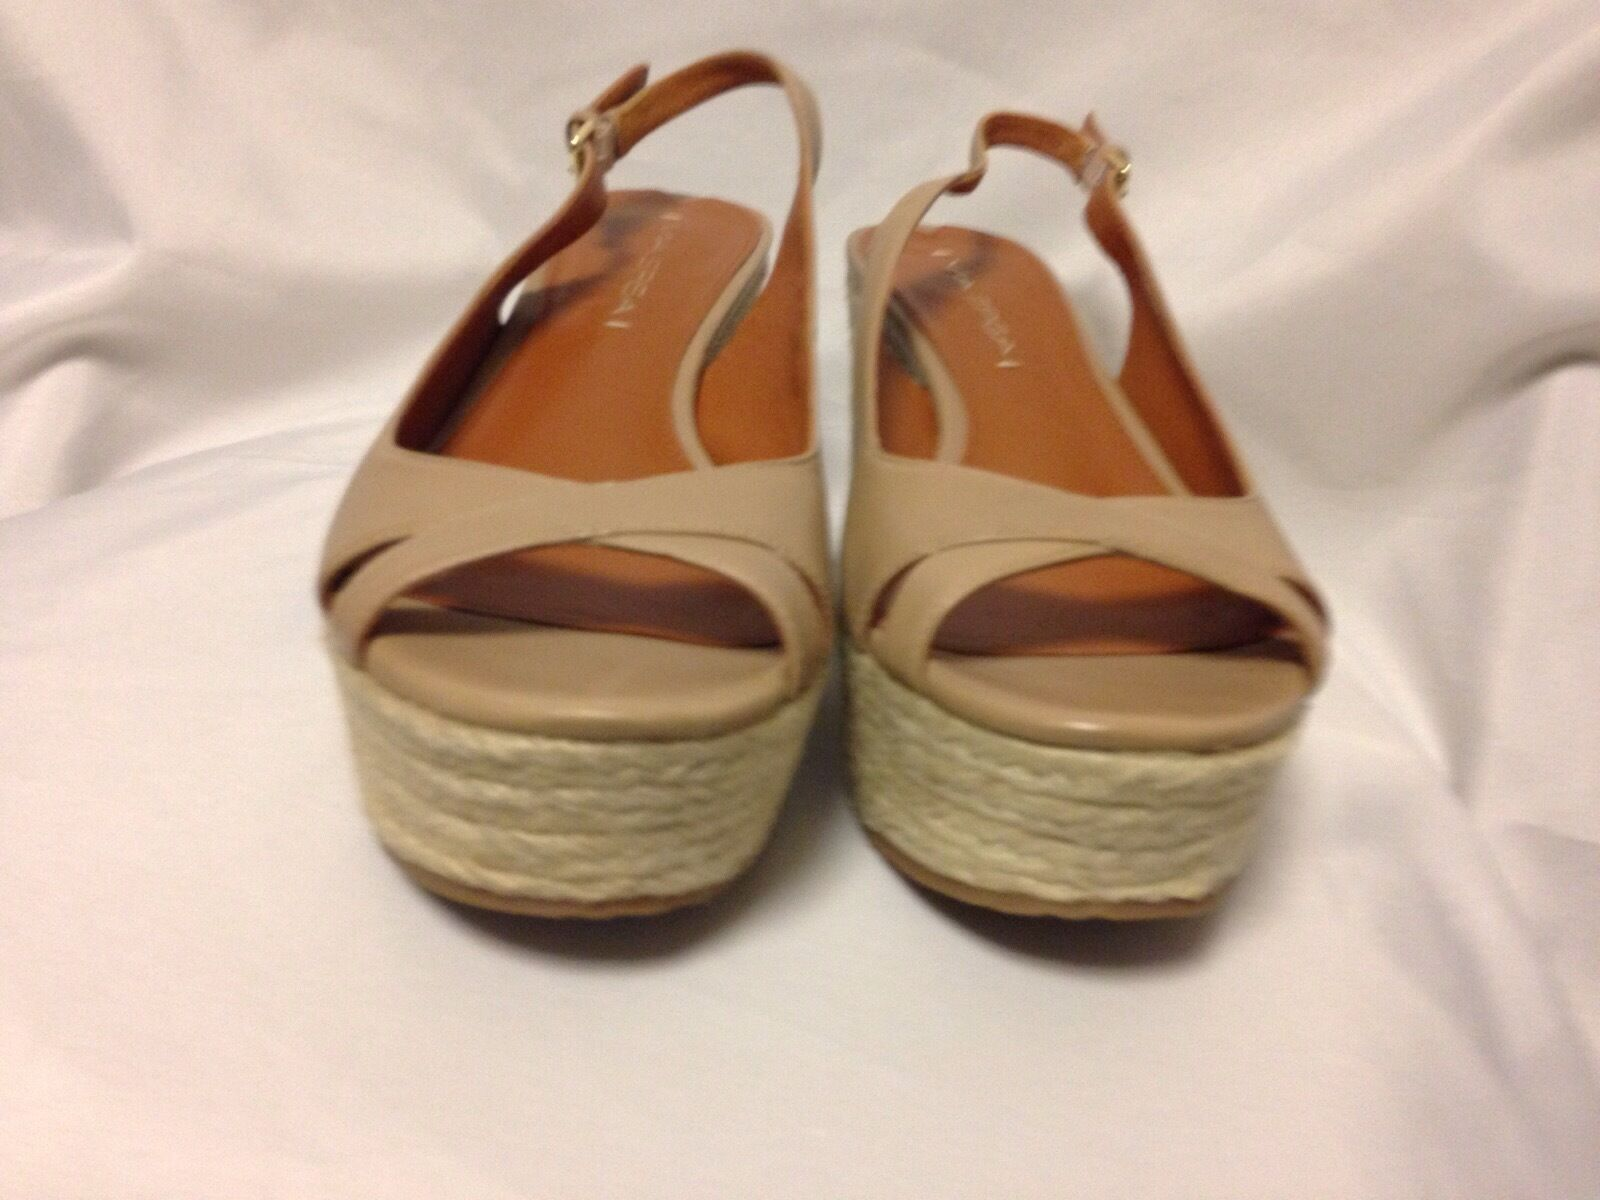 Via Spiga Luciana Platform Wedge Wedge Wedge Espadrille Sandal 8 M Nude  New with Box 318561